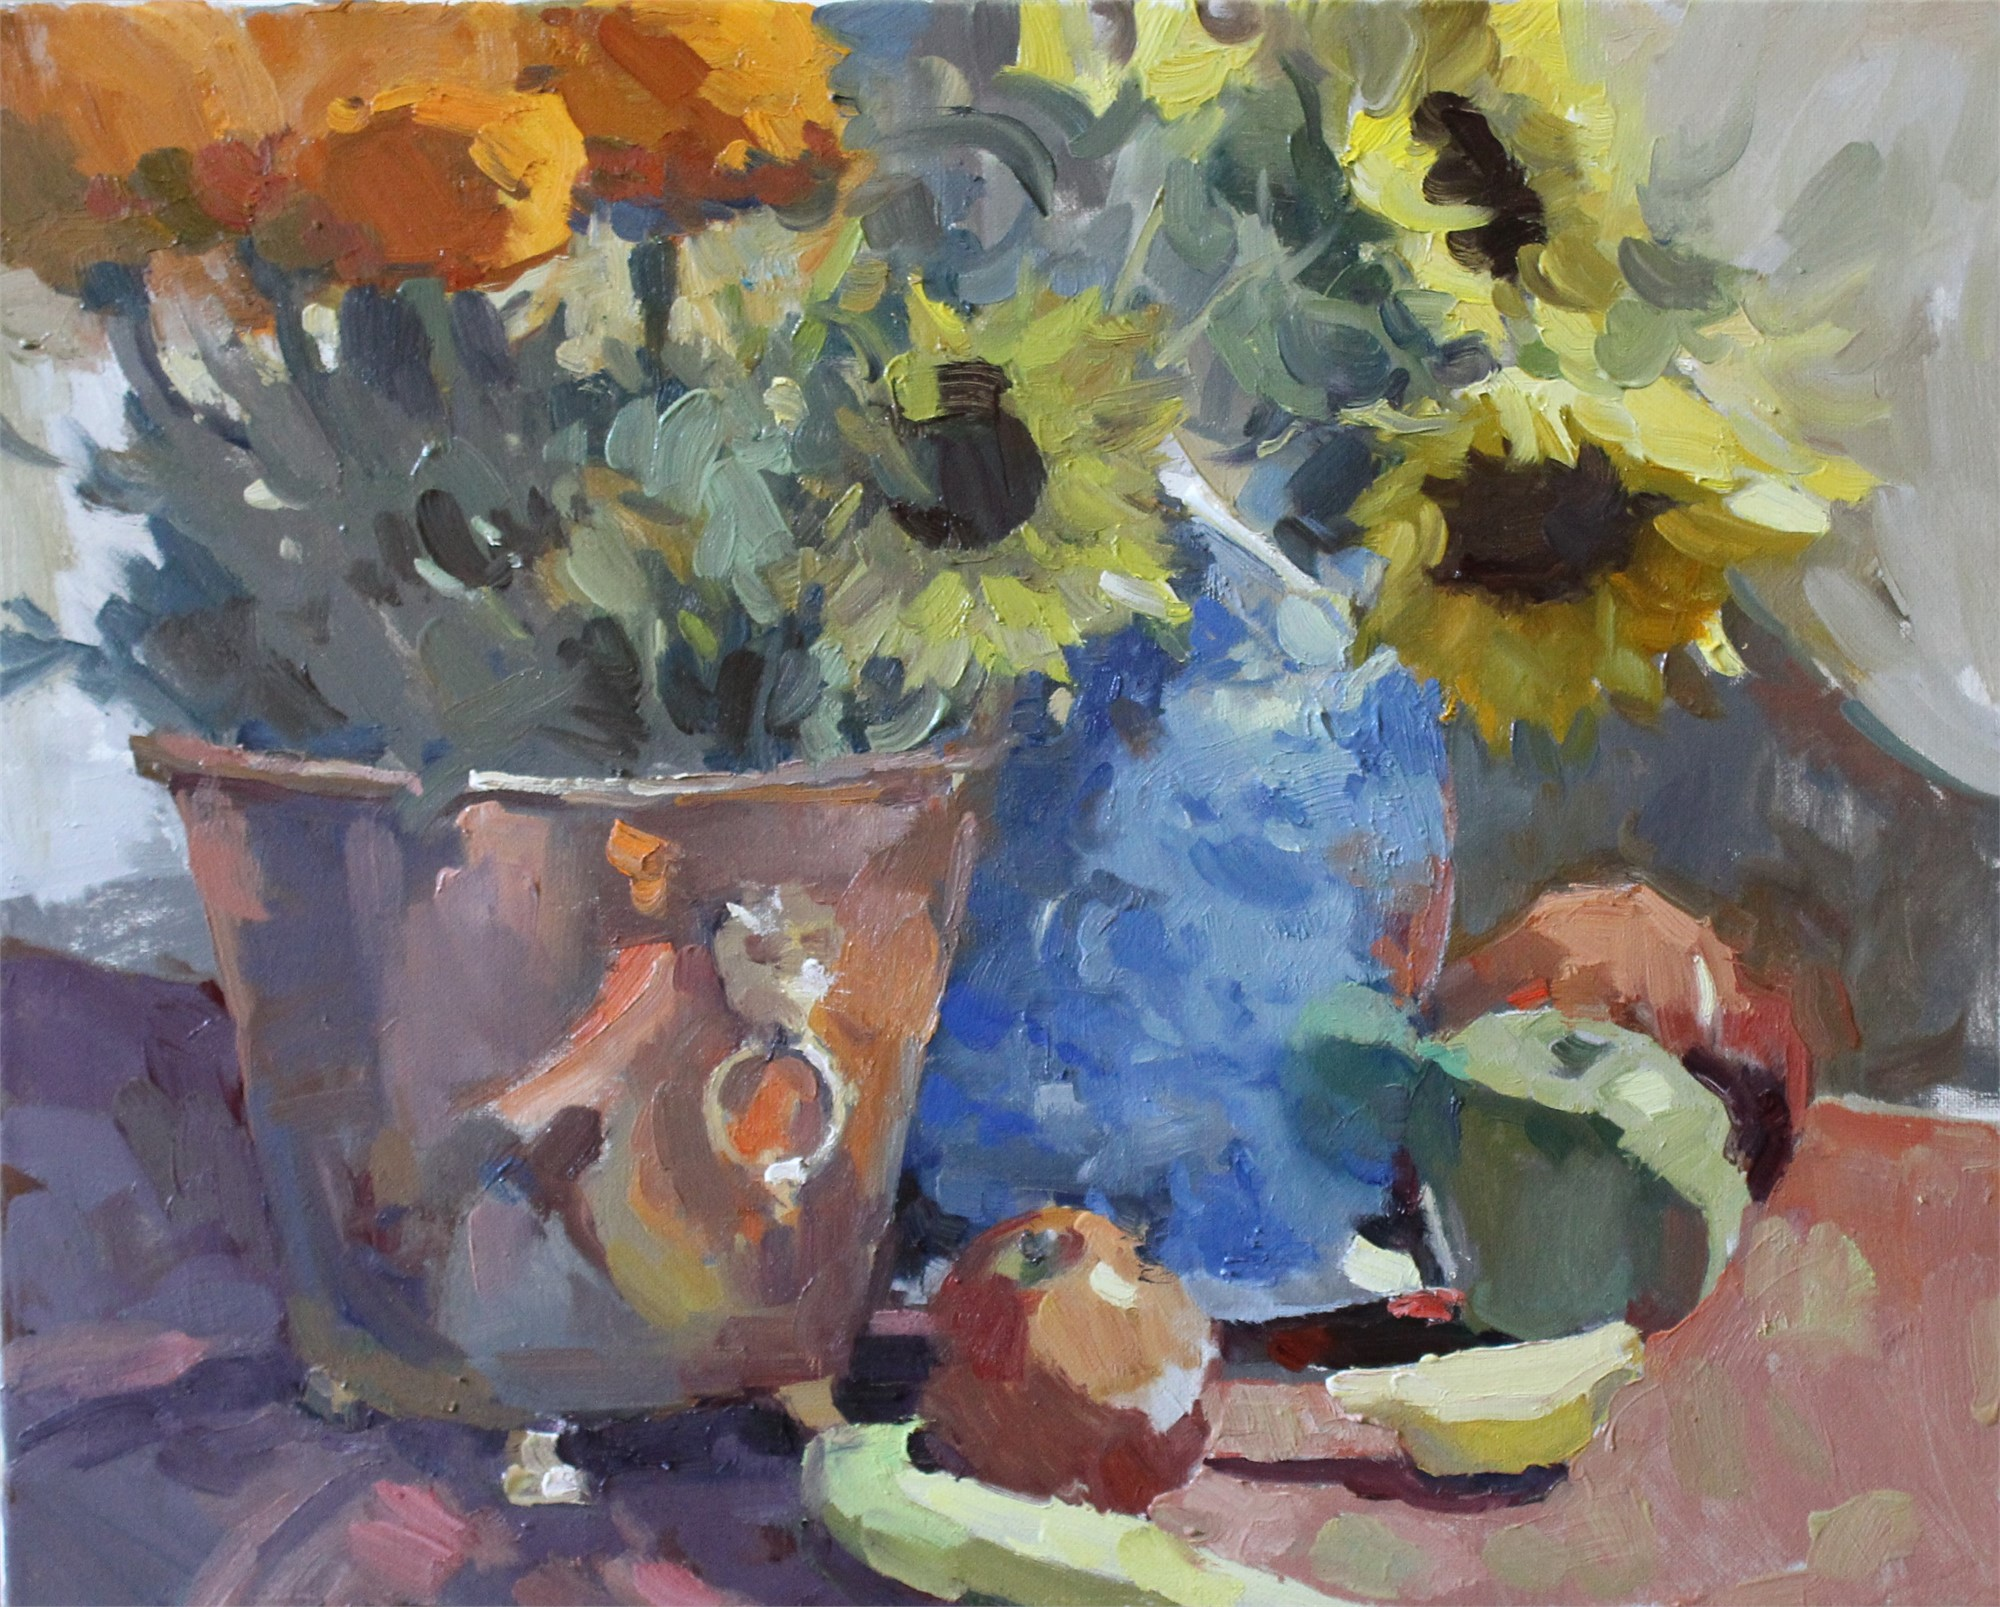 Marigolds, Sunflowers, & Fruit by Brent Jensen